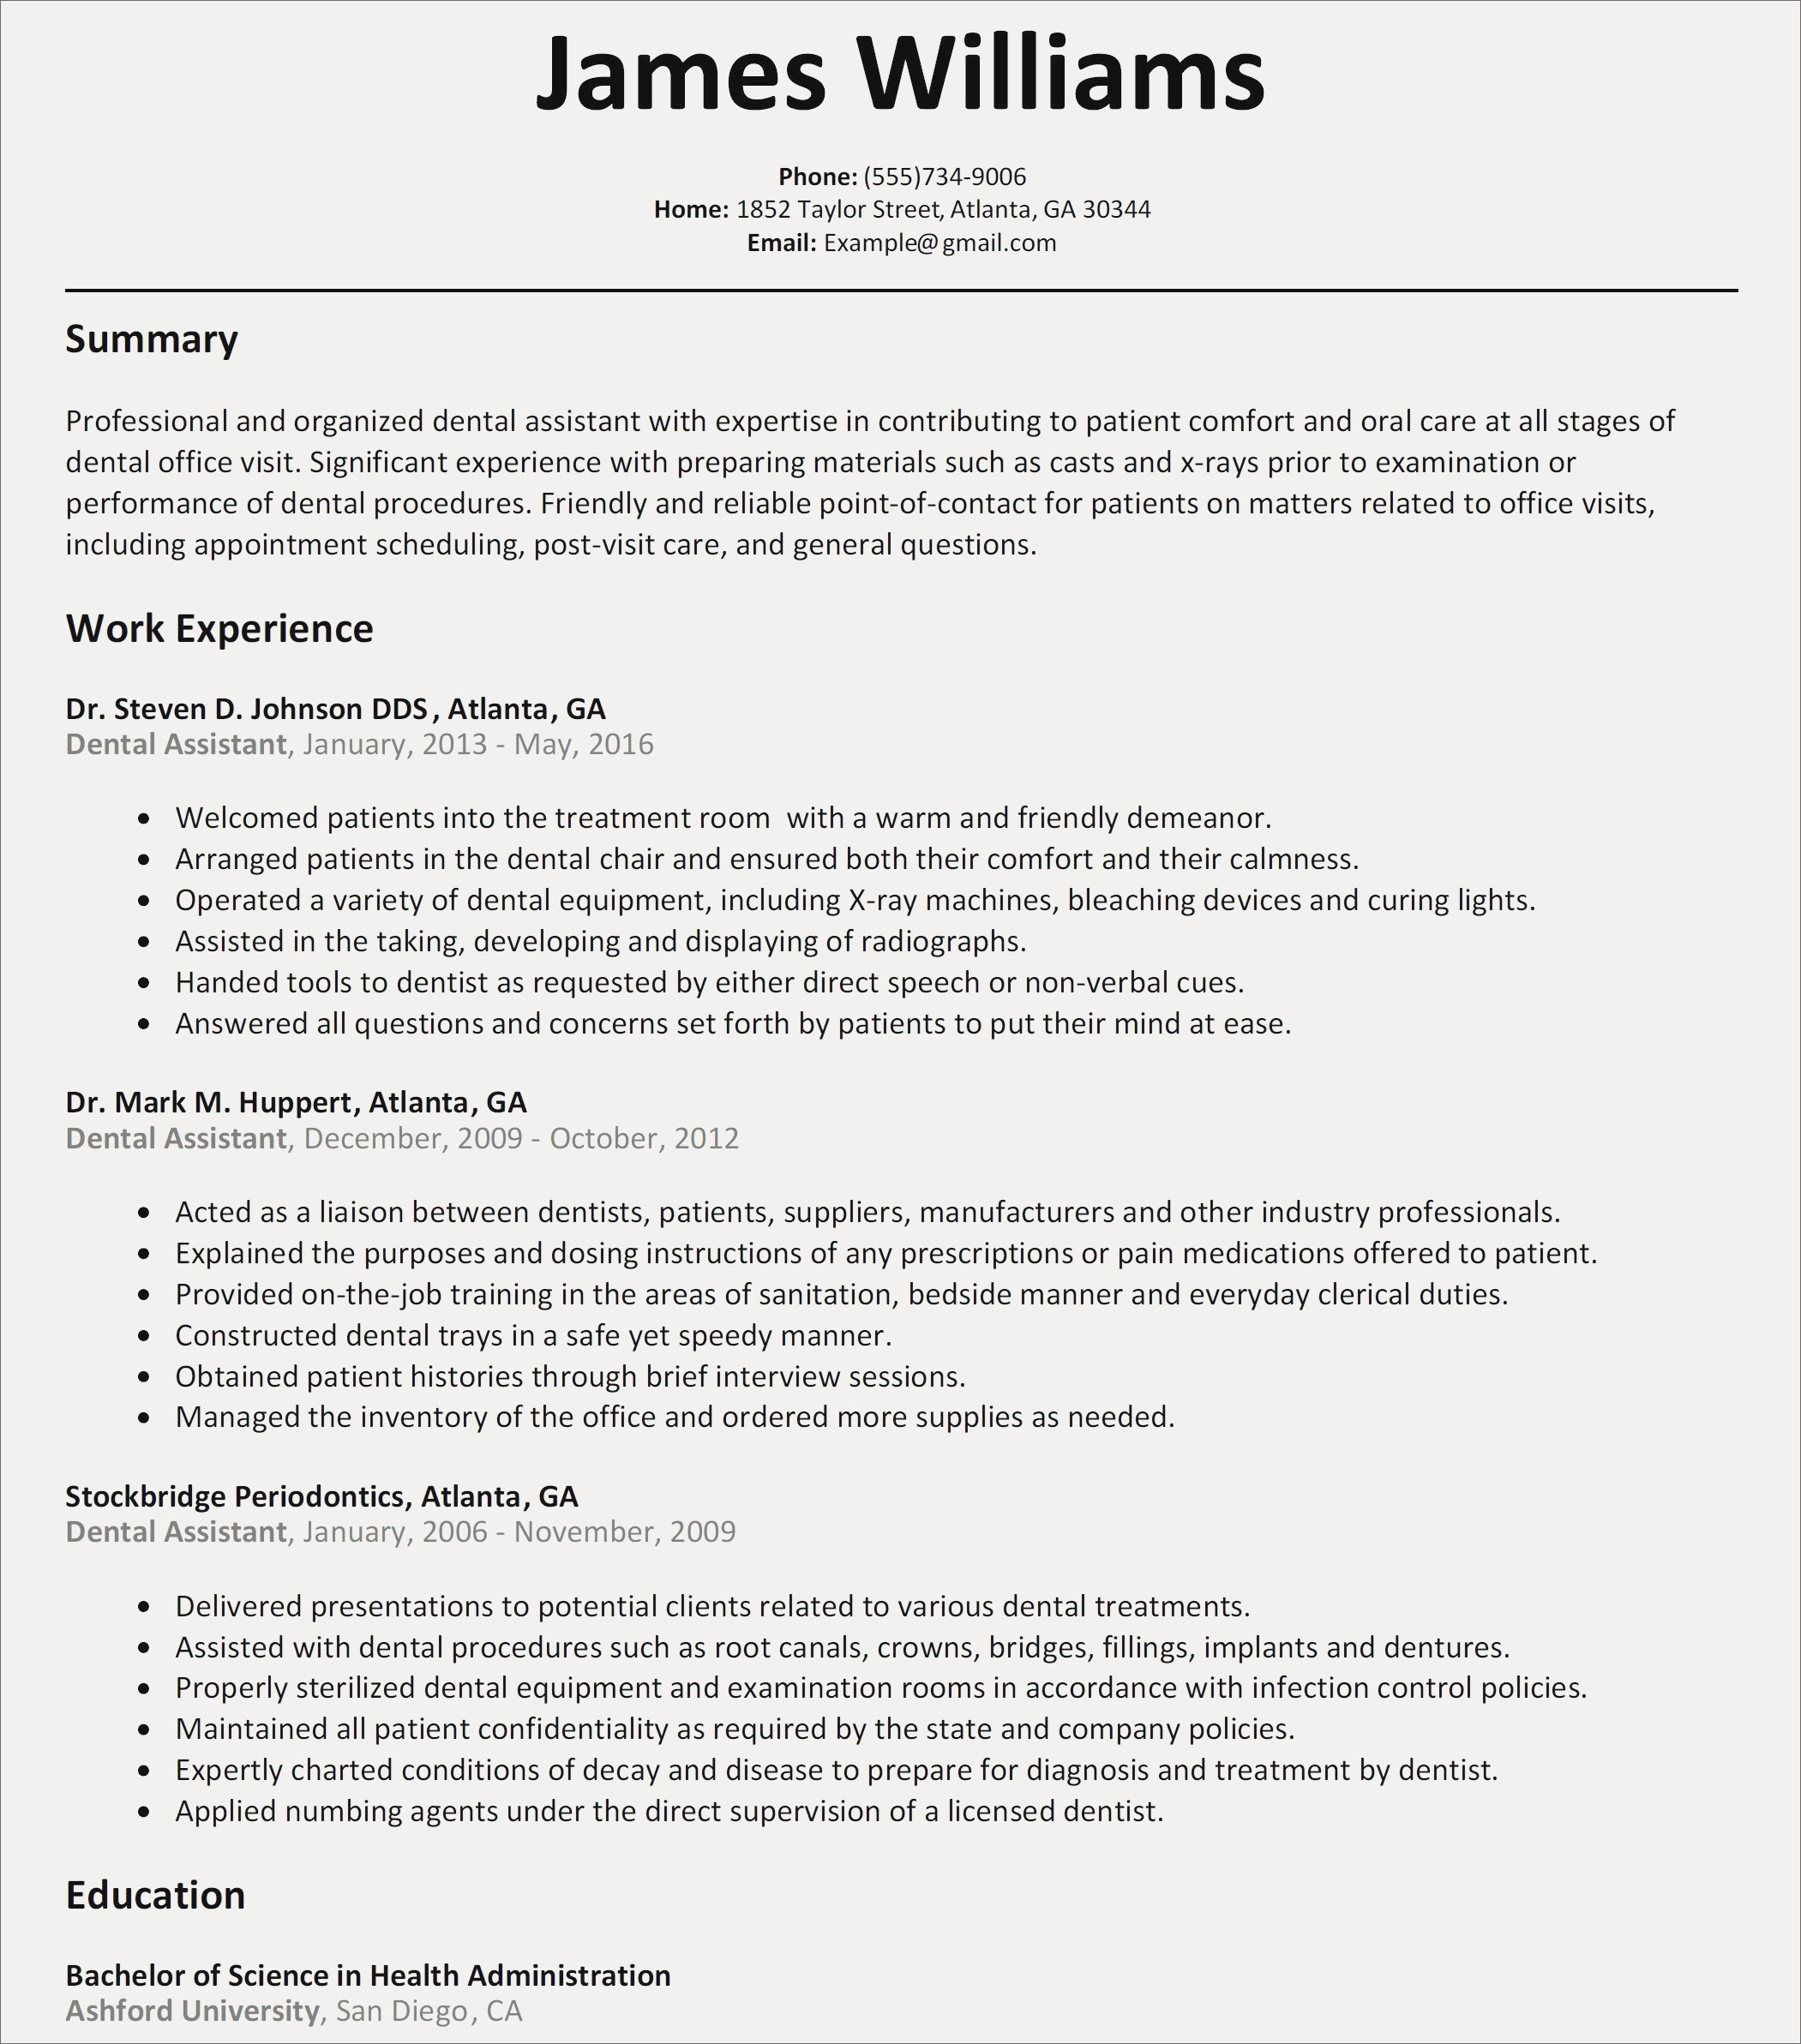 Internship Resume Examples - How to Make A Resume Cove Best How to Write A Cover Letter for